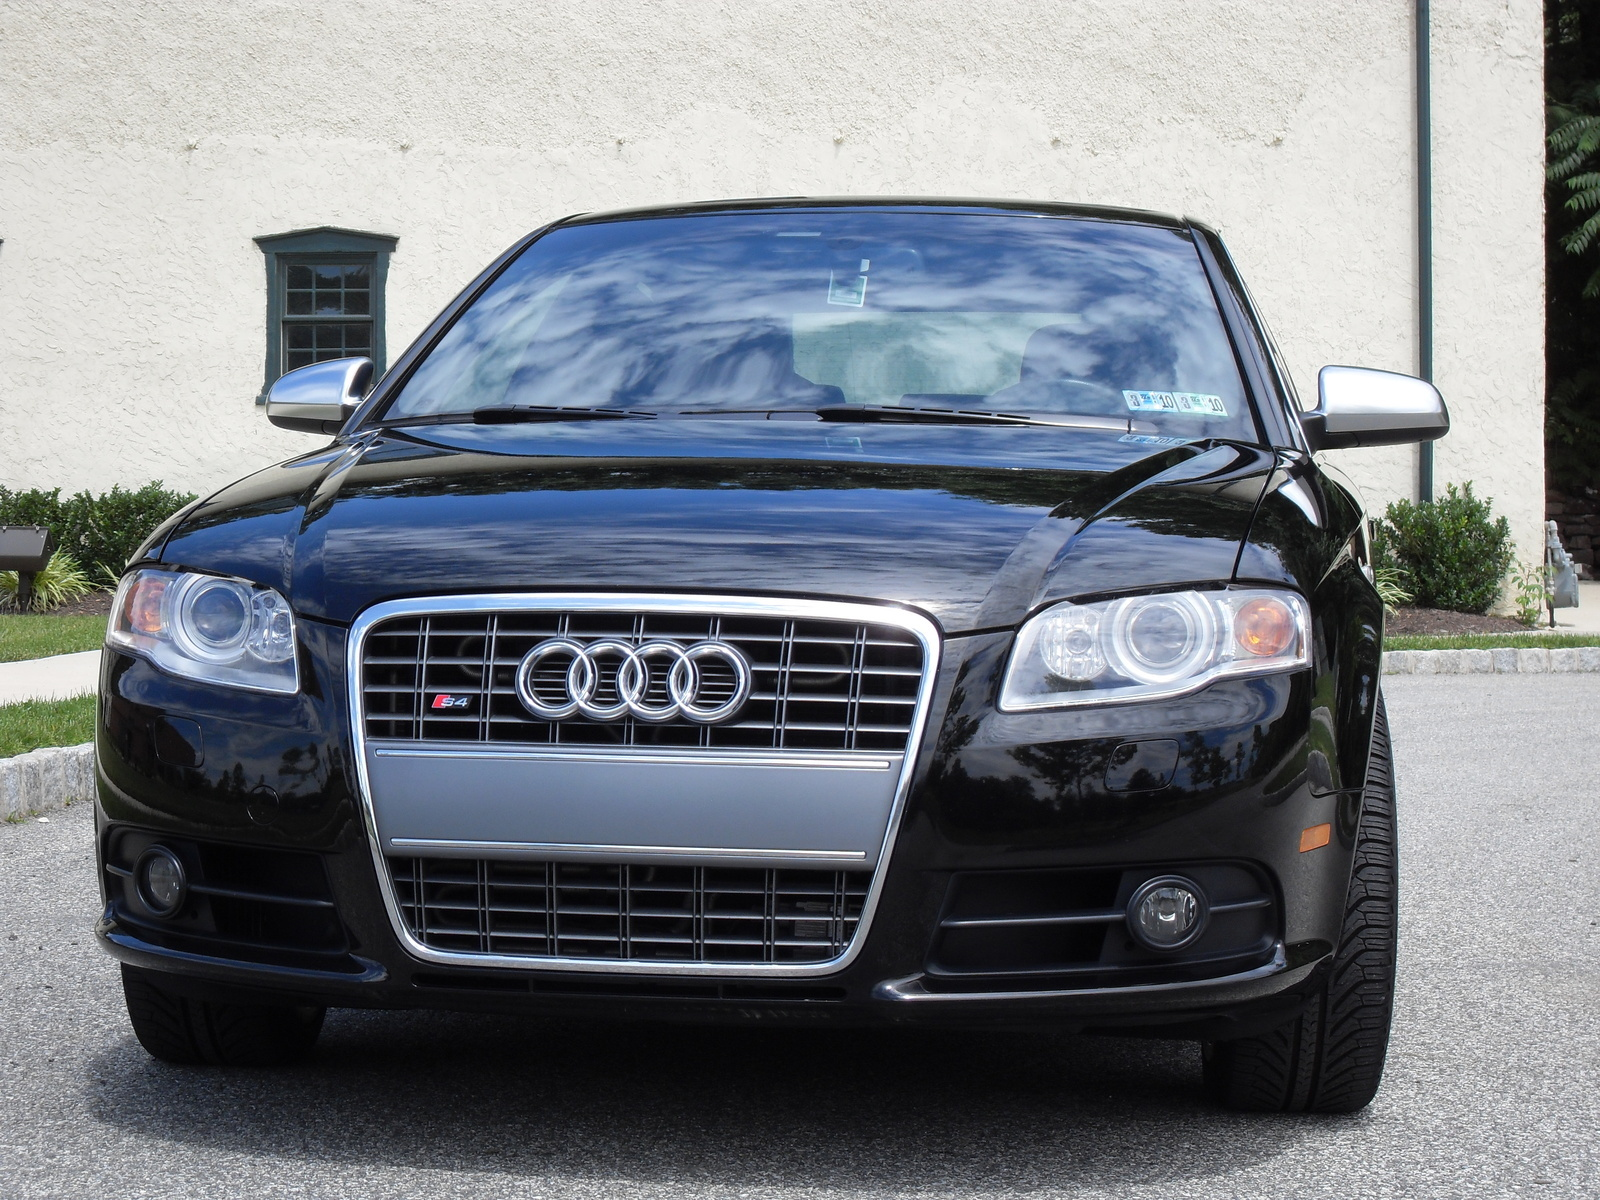 Used audi s8 for sale in canada 5